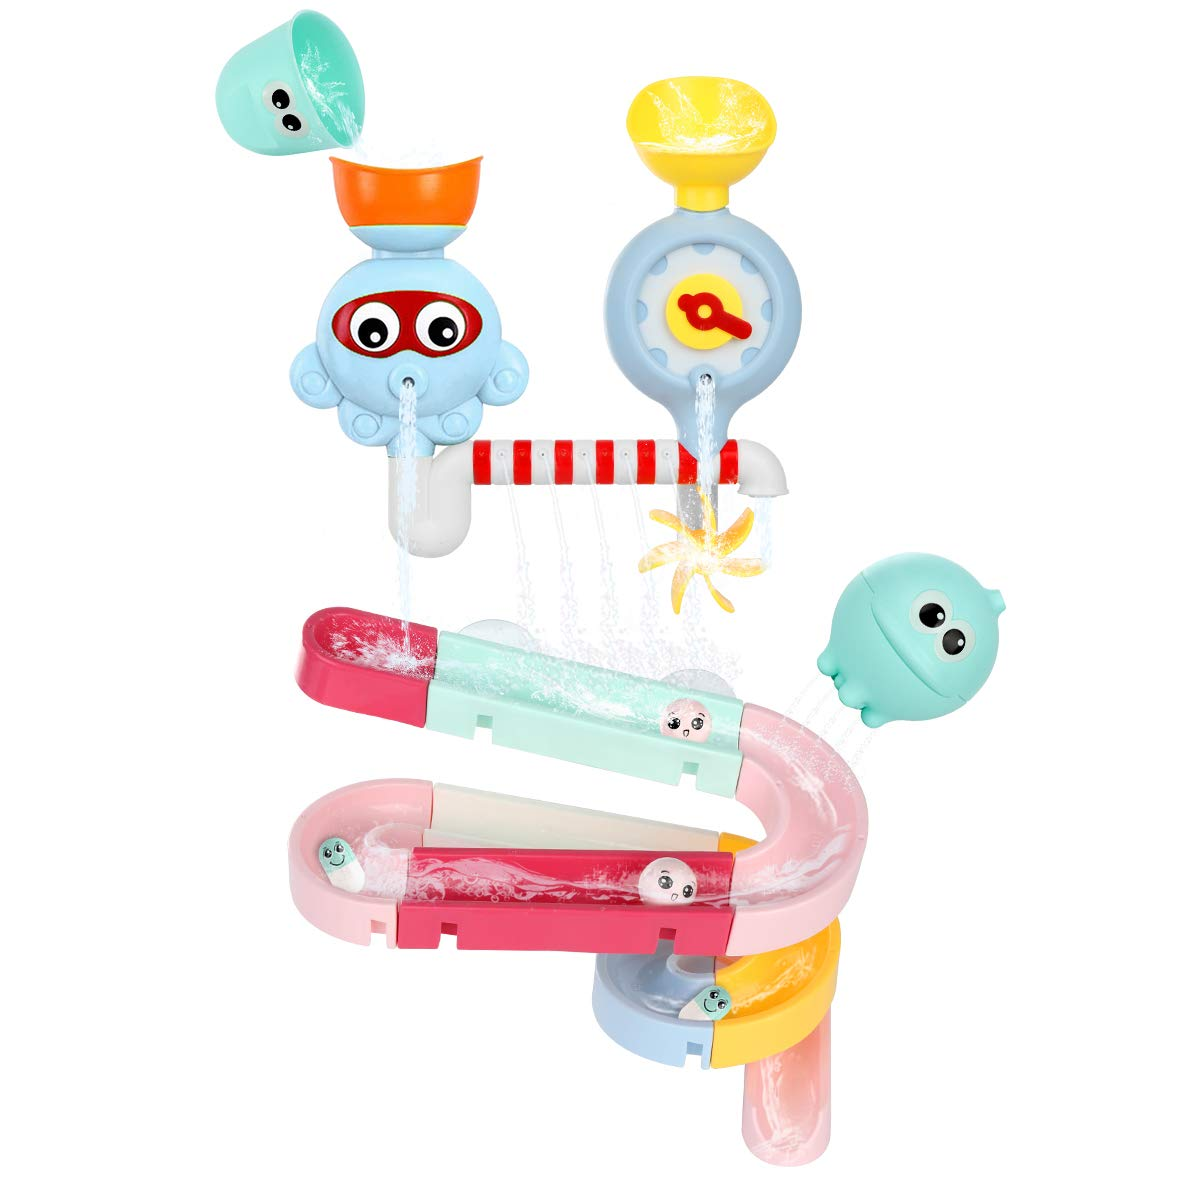 Auggie Toddler Bath Toys Bathtub Tub Toy Splash Water Spinning Gear Waterfall Ball Track Set Wall Bathtime Toy for 1 2 3 4 Years Old Kids Boys Girls